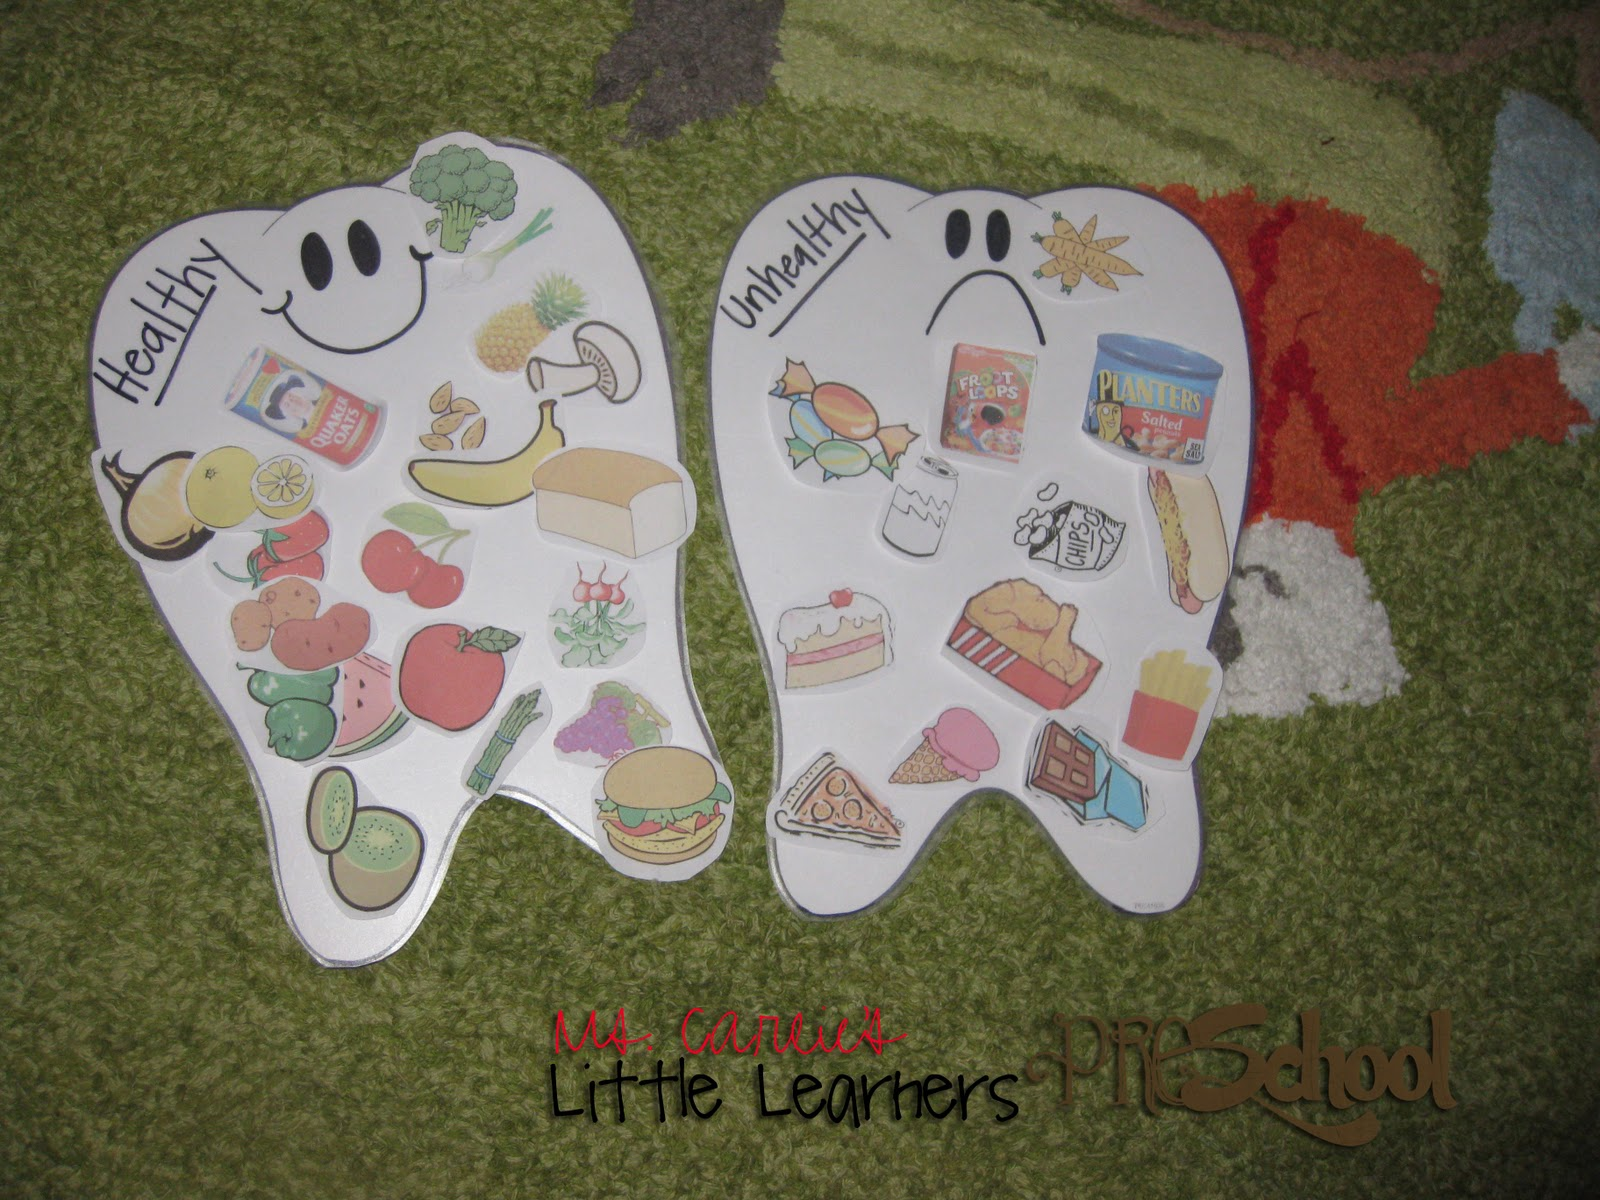 Ms Carlie S Little Learners Preschool February Week Four